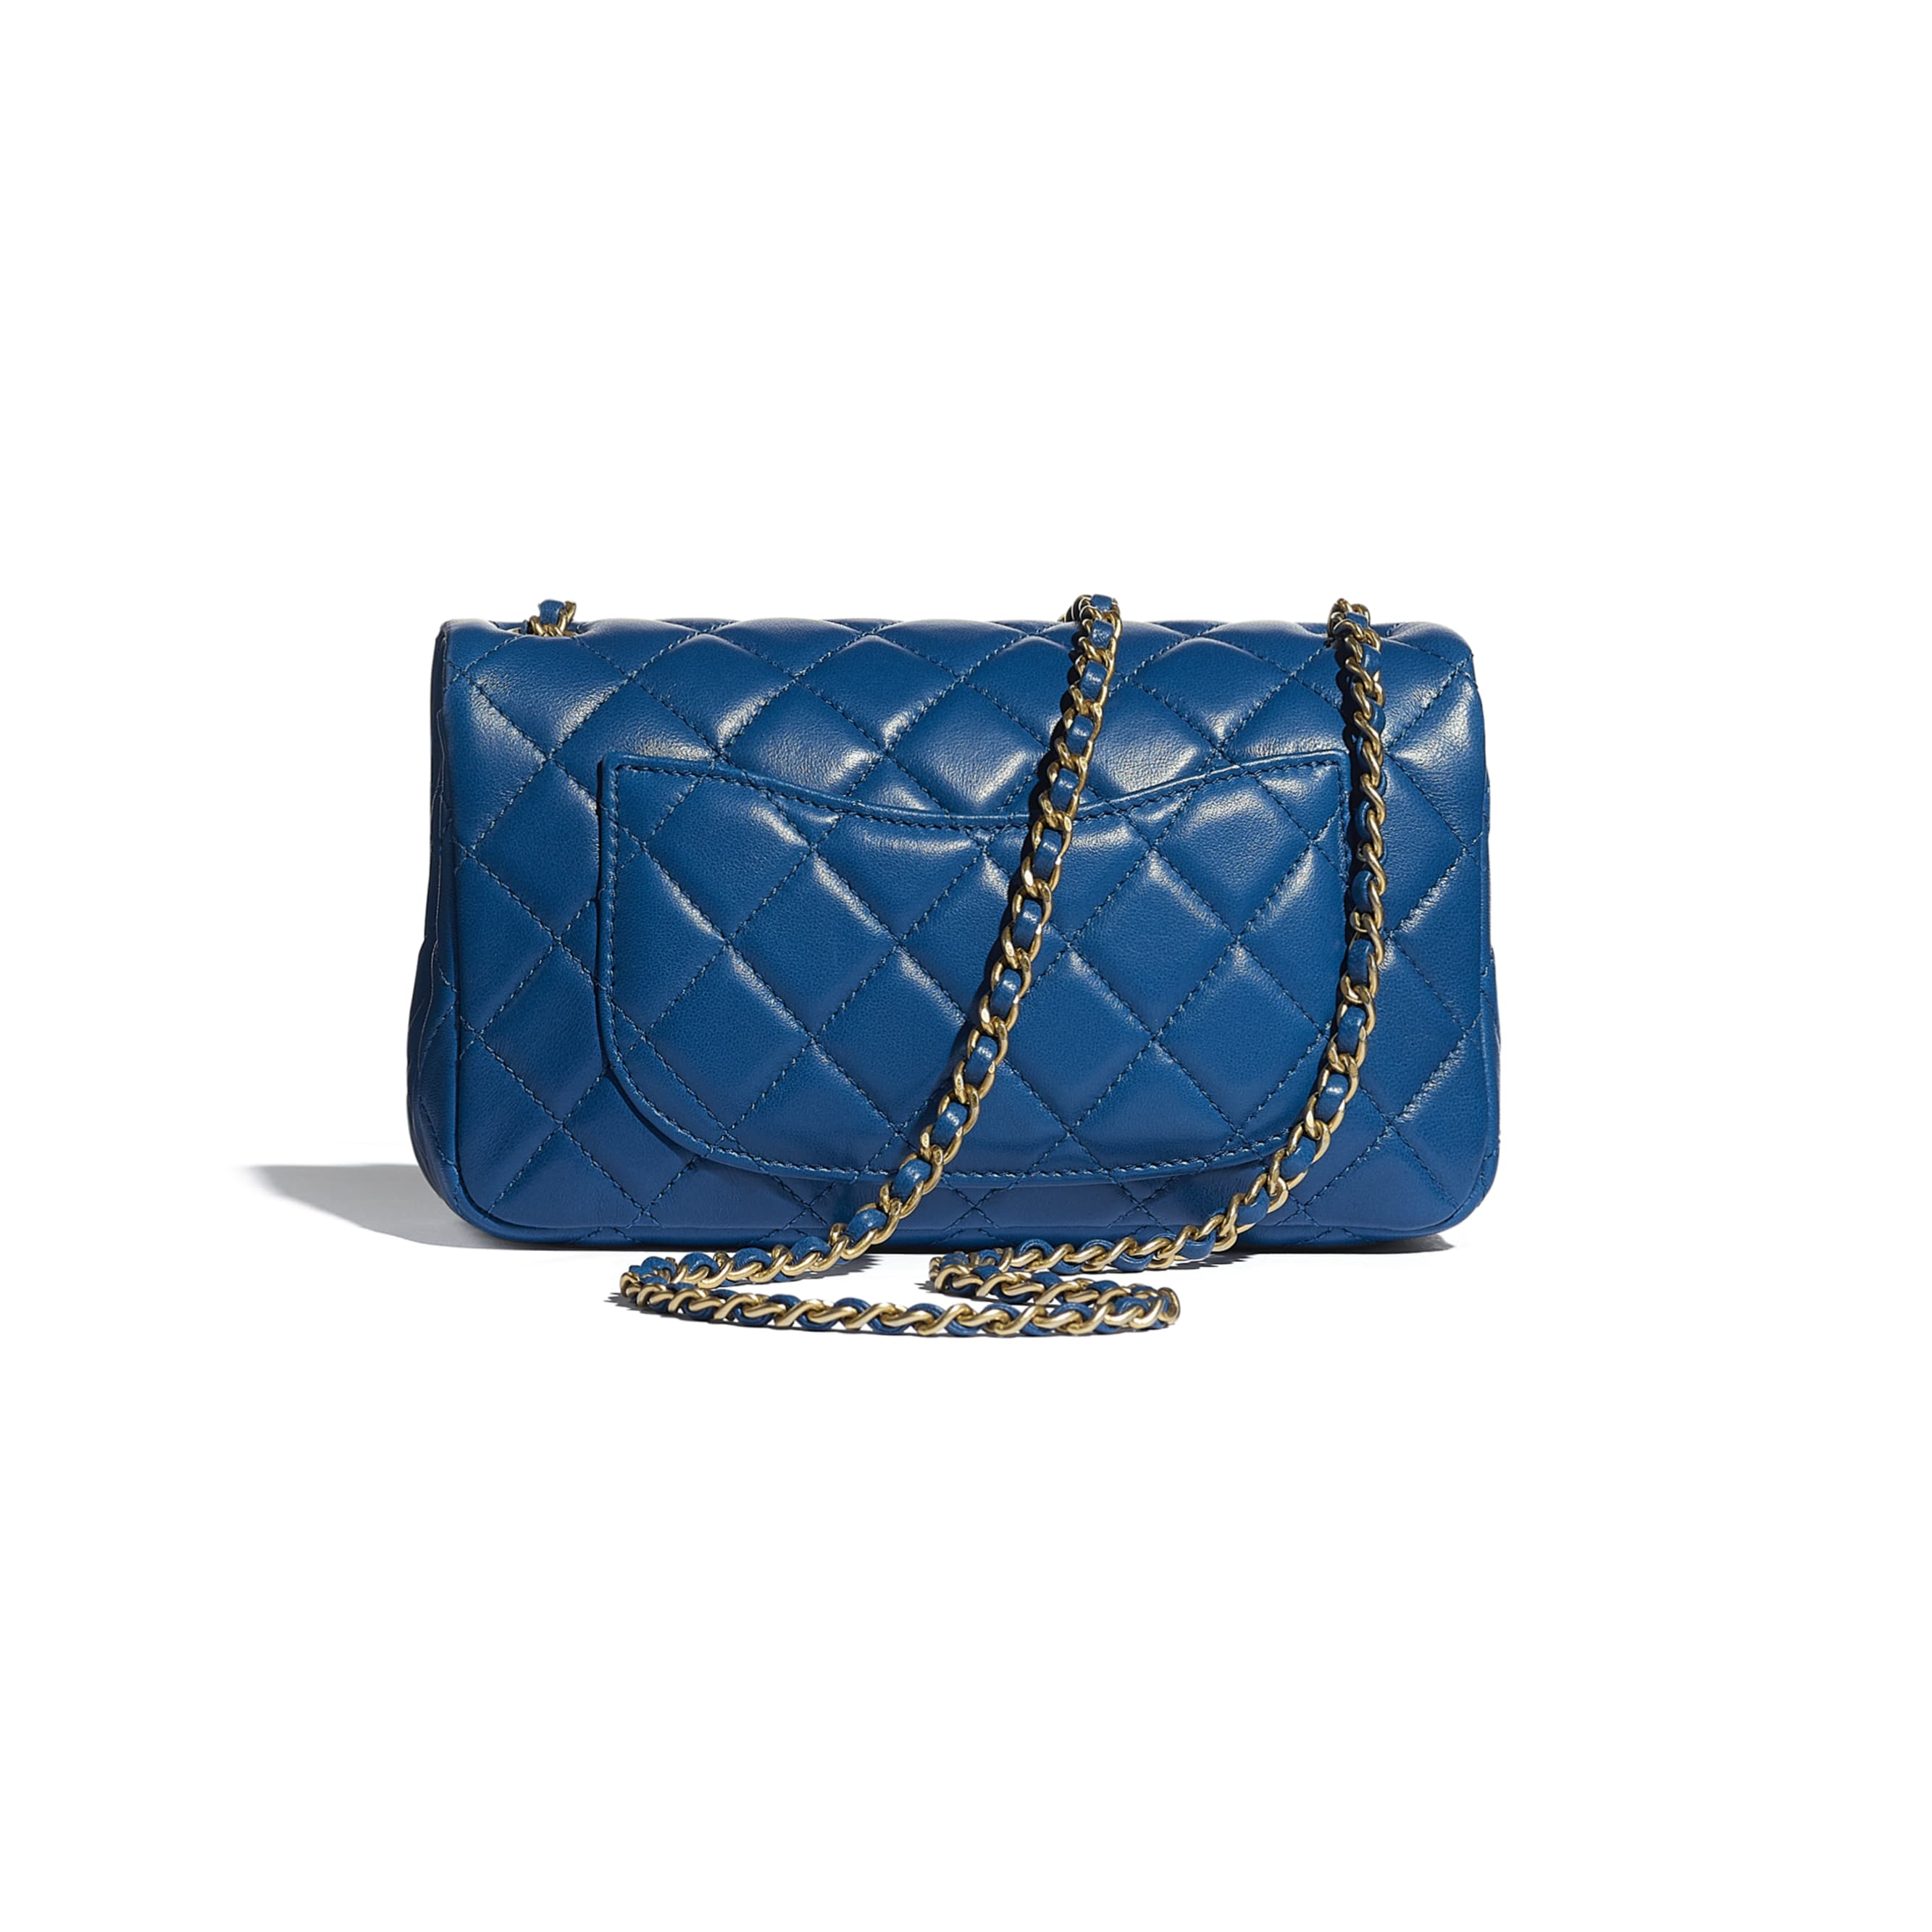 Mini Flap Bag - Blue - Lambskin - CHANEL - Alternative view - see standard sized version